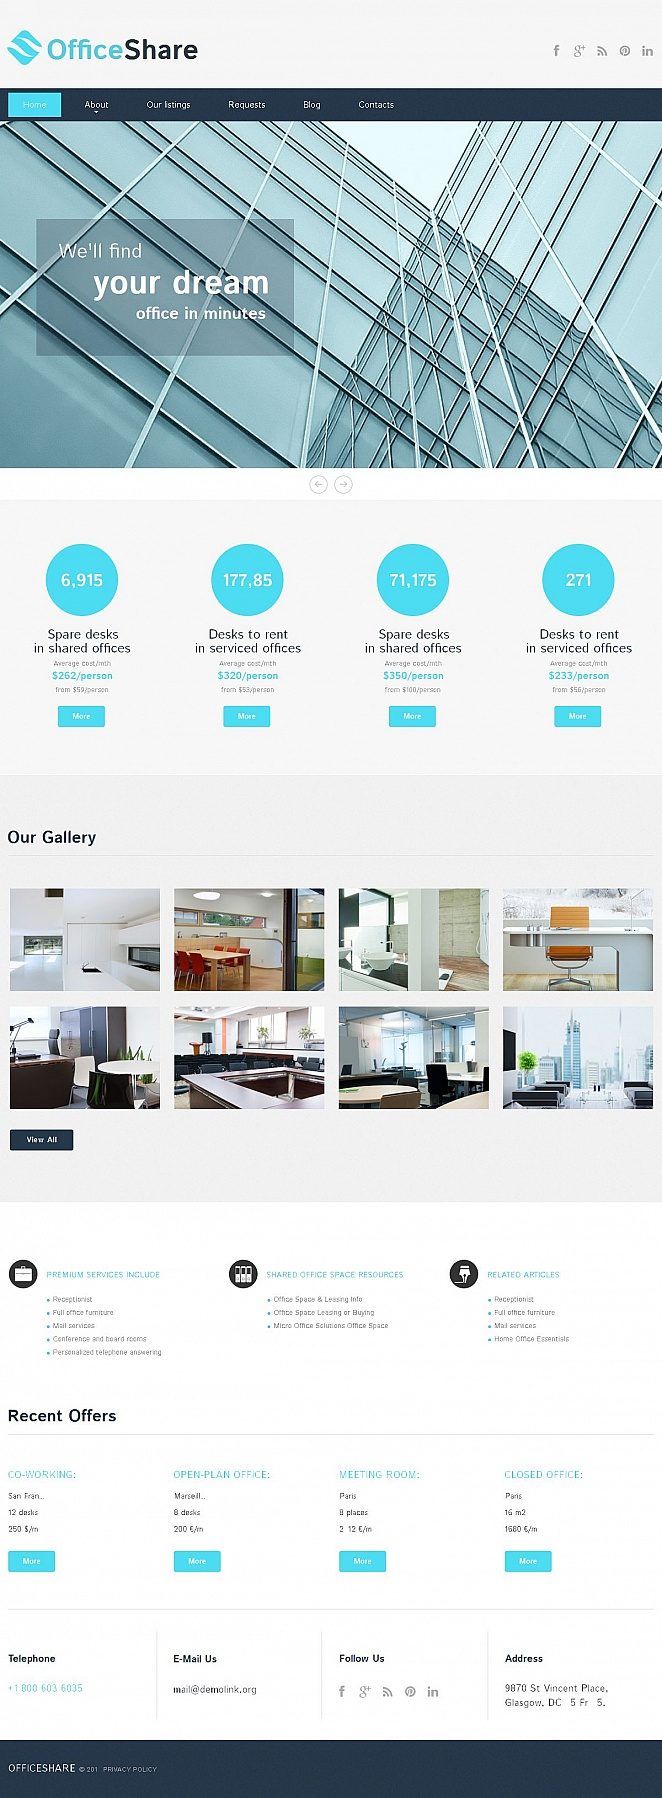 Business Website Template for Office Rental - image